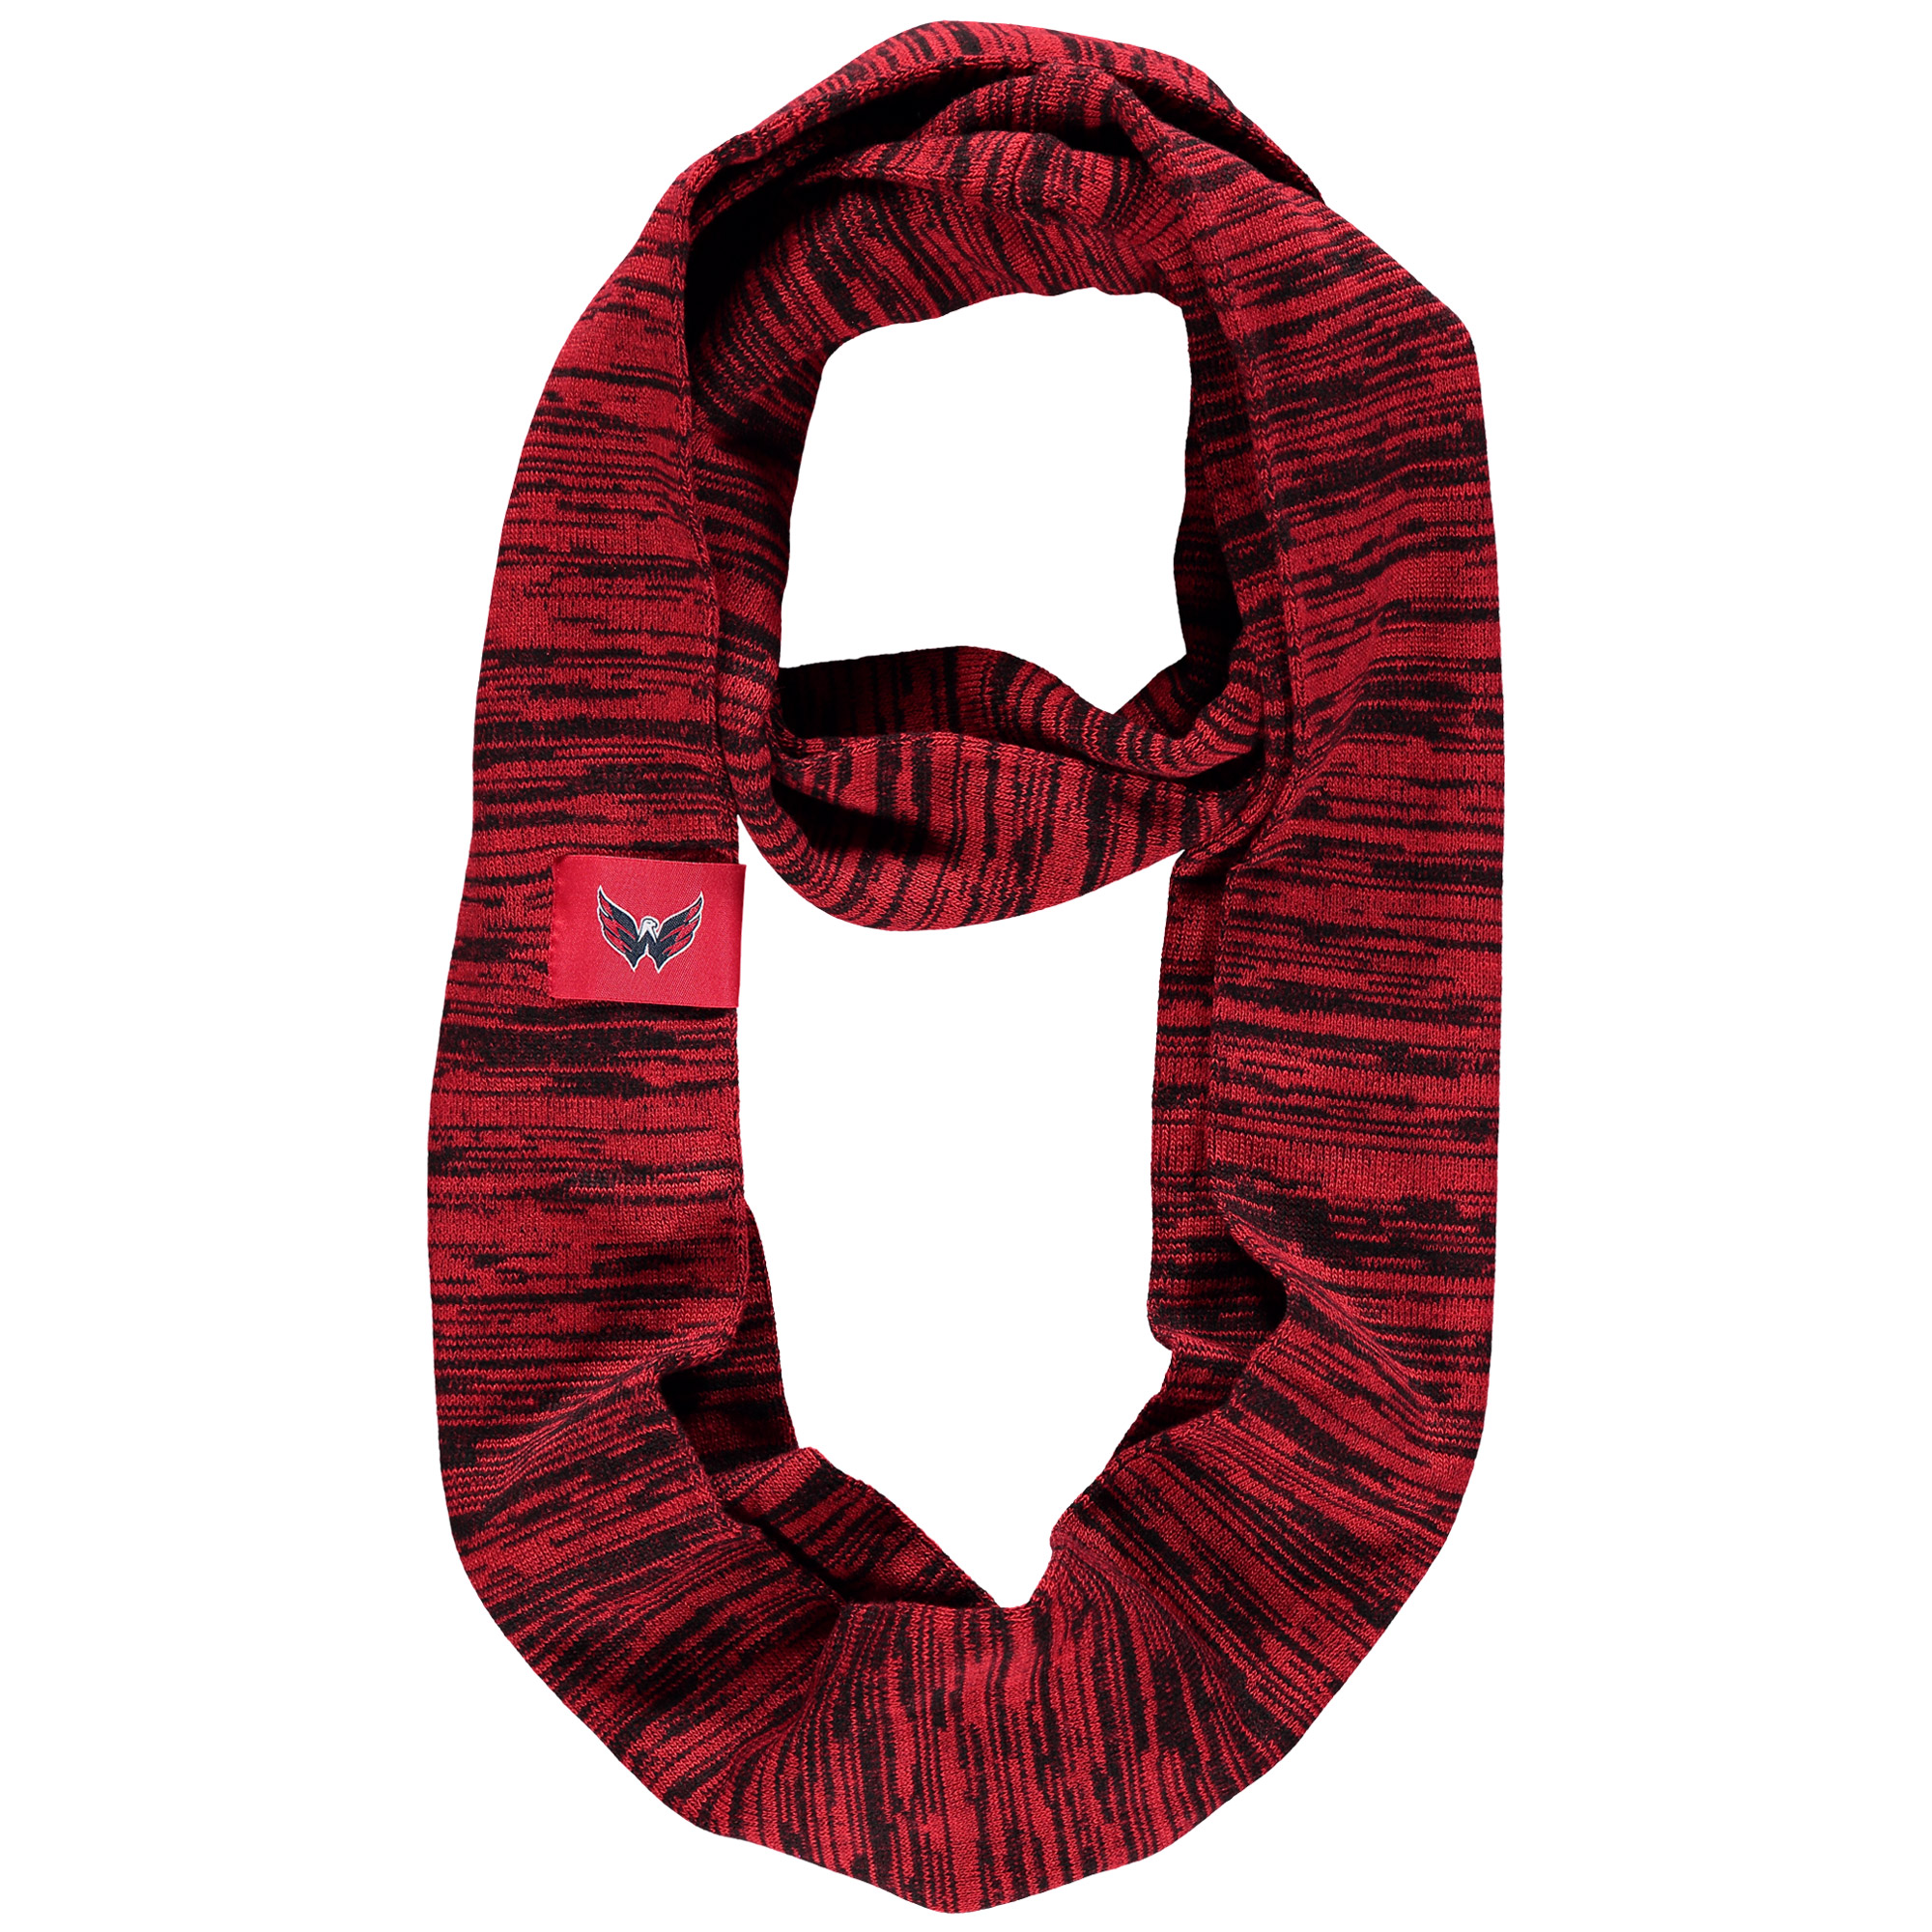 Washington Capitals Colorblend Infinity Scarf - Navy - No Size